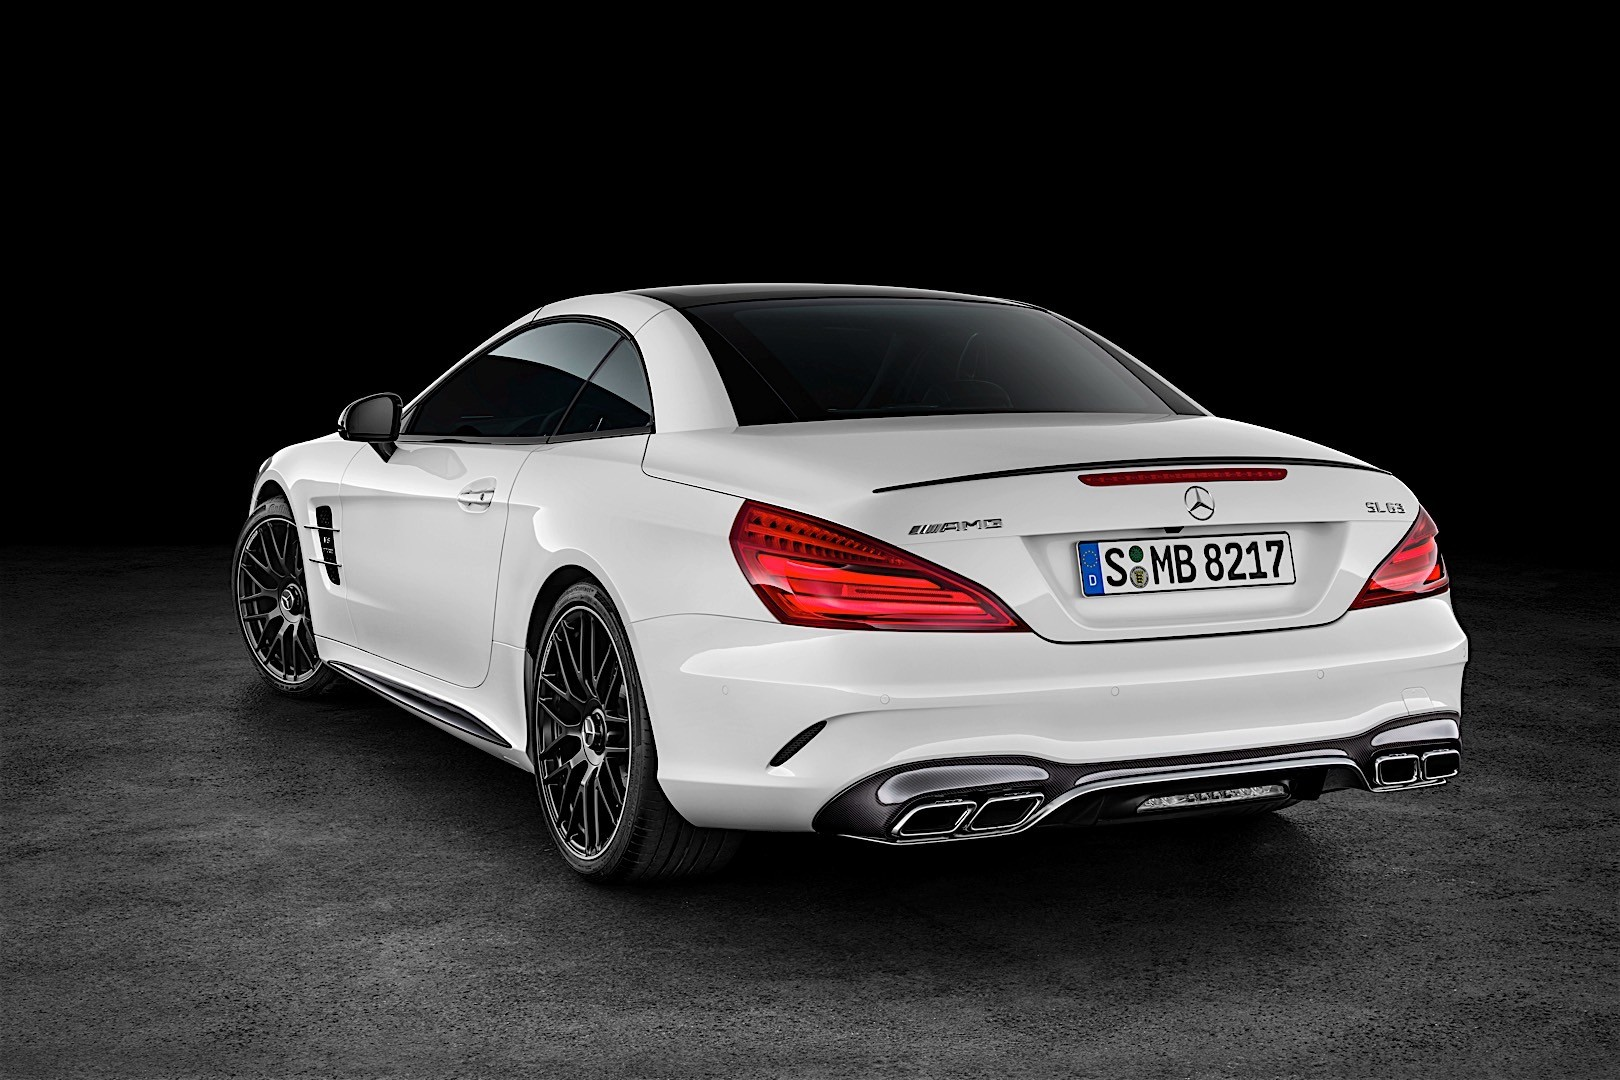 mercedes benz sl 63 amg r231 specs 2016 2017 2018 autoevolution. Black Bedroom Furniture Sets. Home Design Ideas